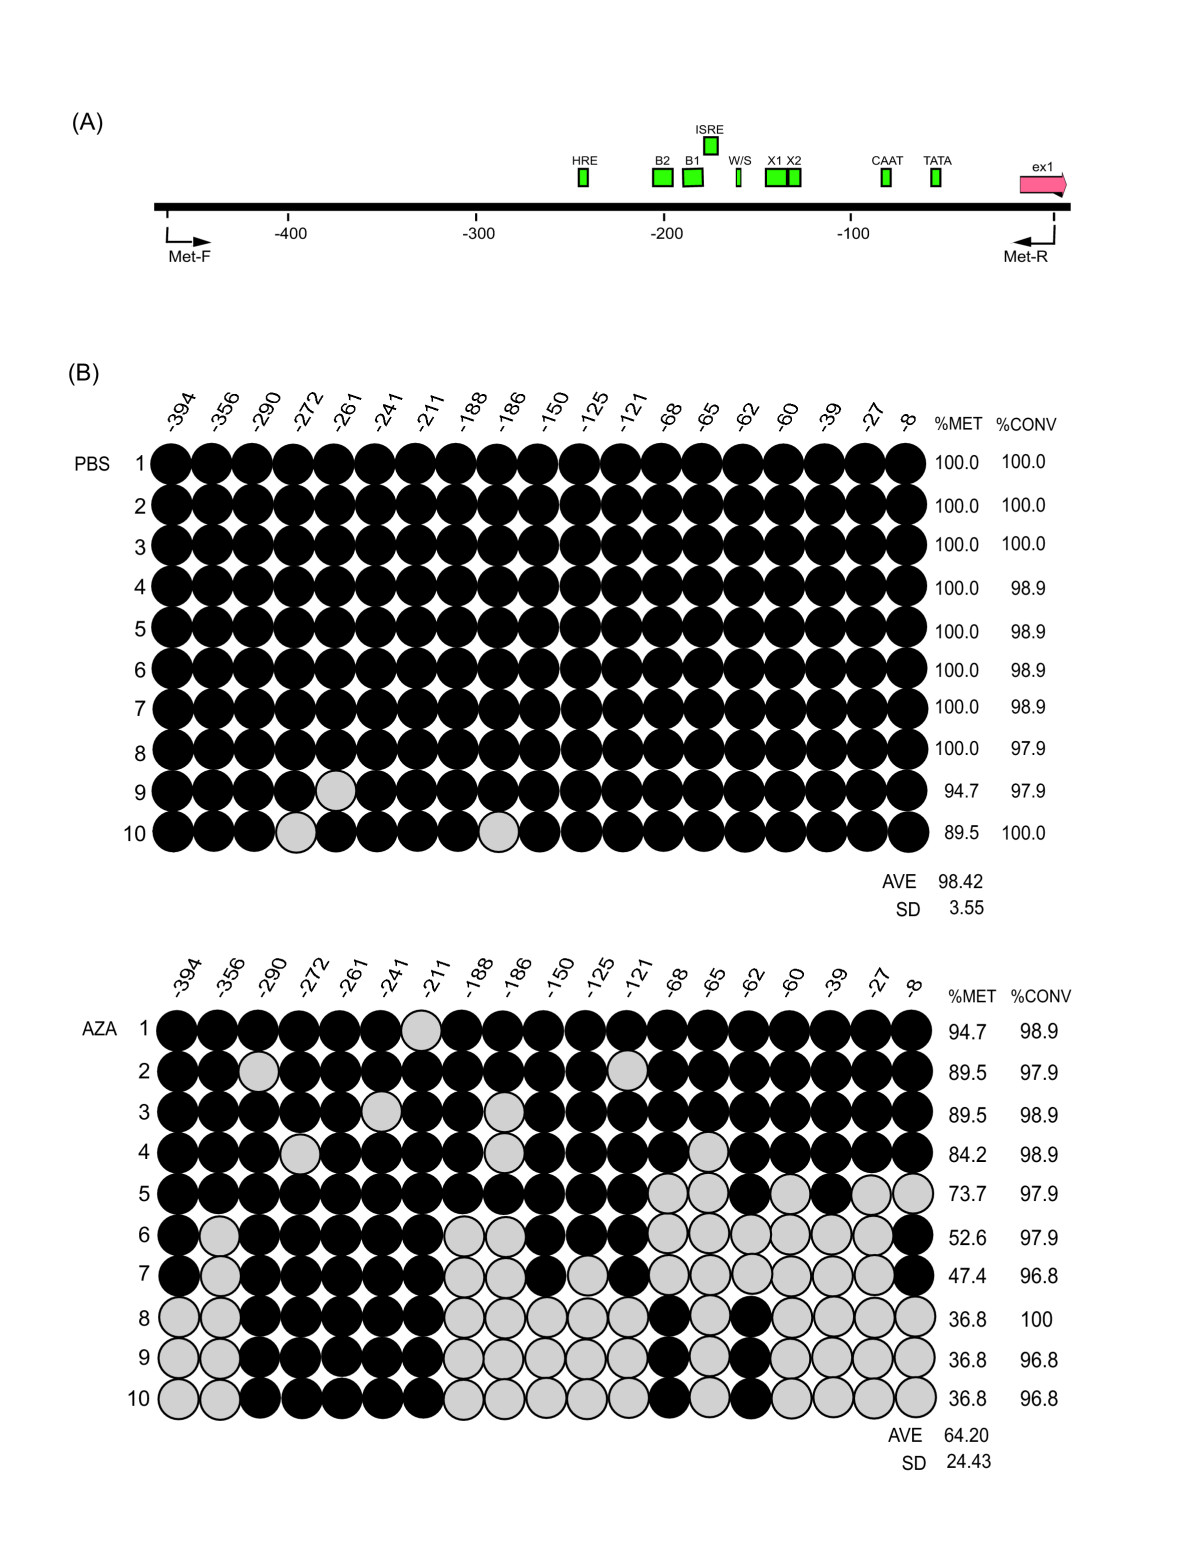 http://static-content.springer.com/image/art%3A10.1186%2F1476-4598-7-43/MediaObjects/12943_2008_Article_334_Fig2_HTML.jpg